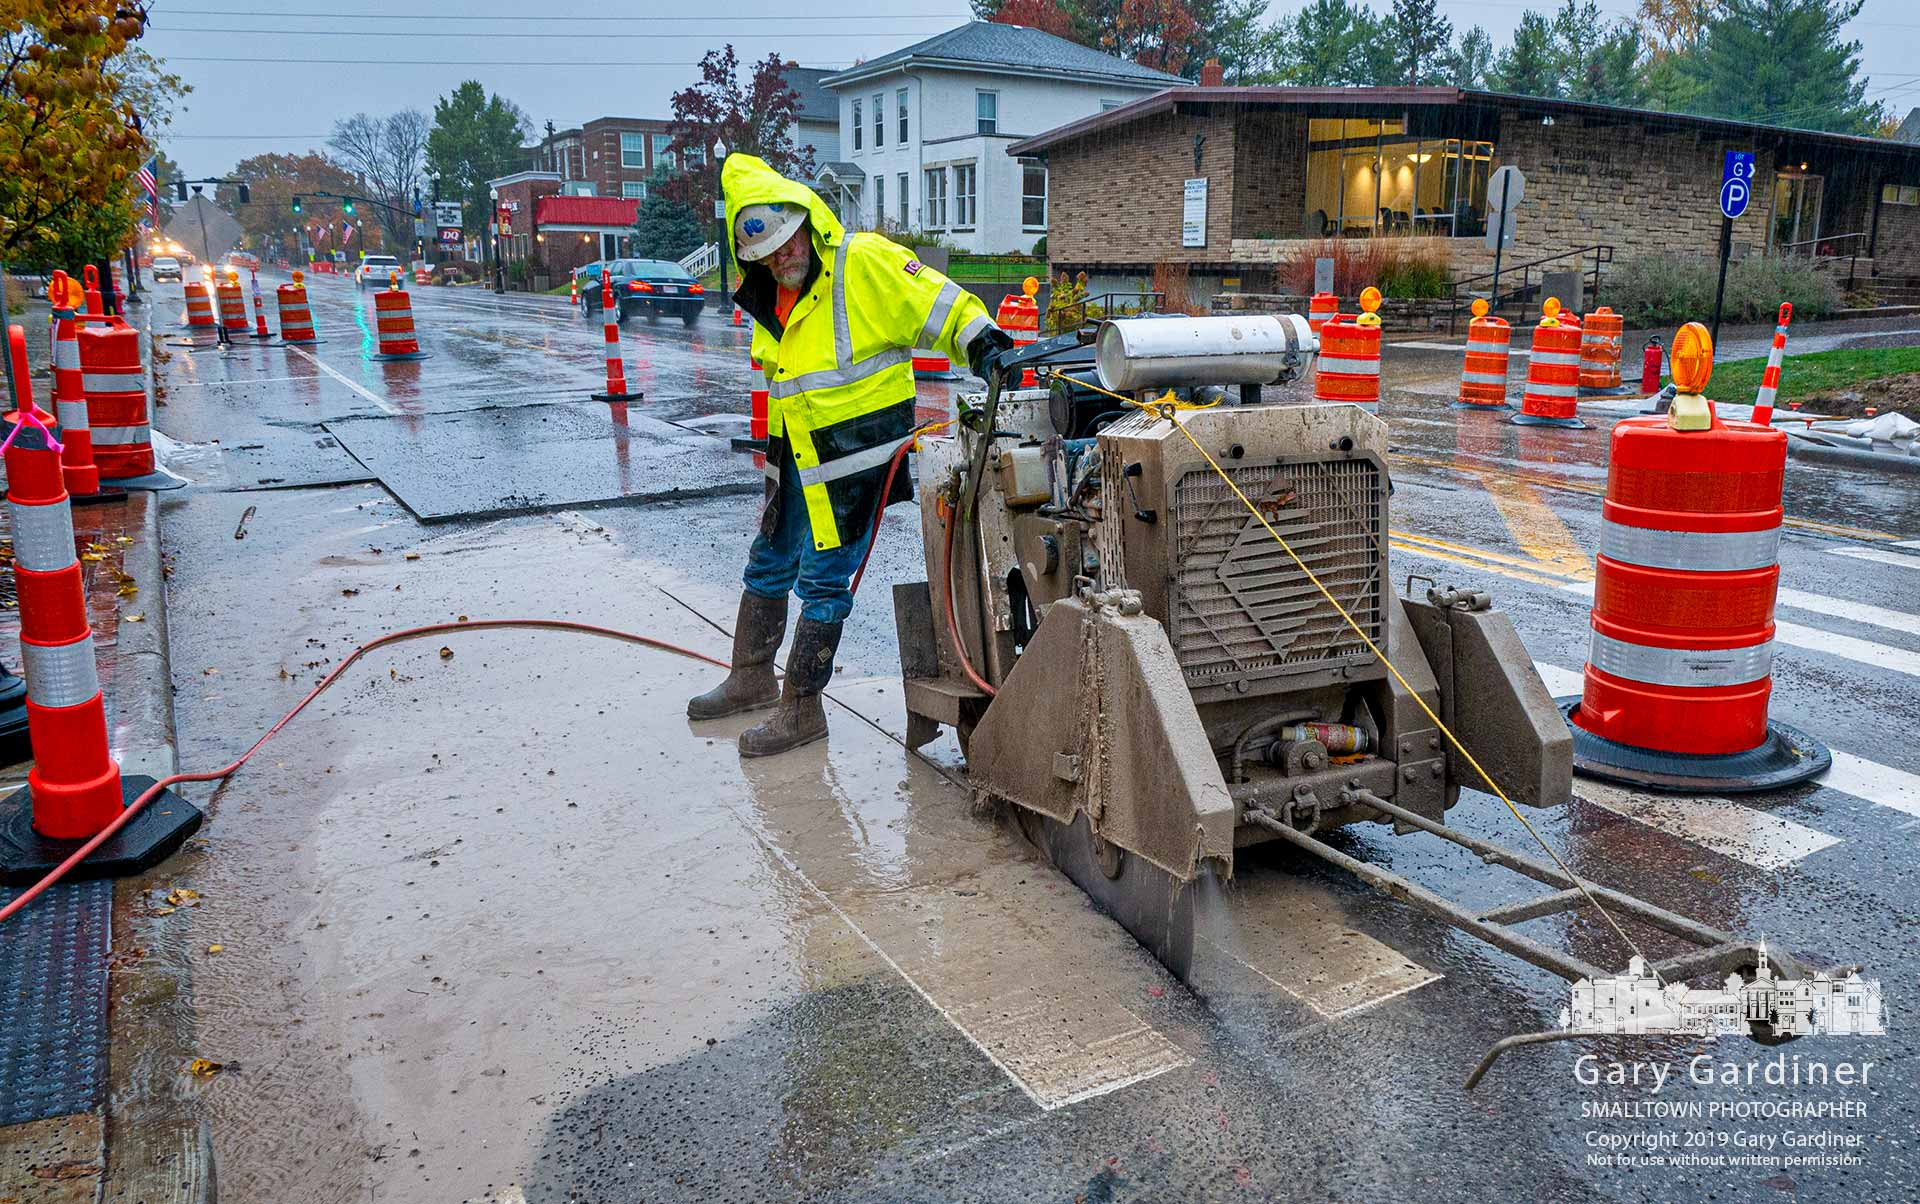 A crew works during the morning rain to cut away sections of South State and the adjacent sidewalk for what will become a bumpout for the rebuilt pedestrian crossing at the library. My Final Photo for Oct. 31, 2019.